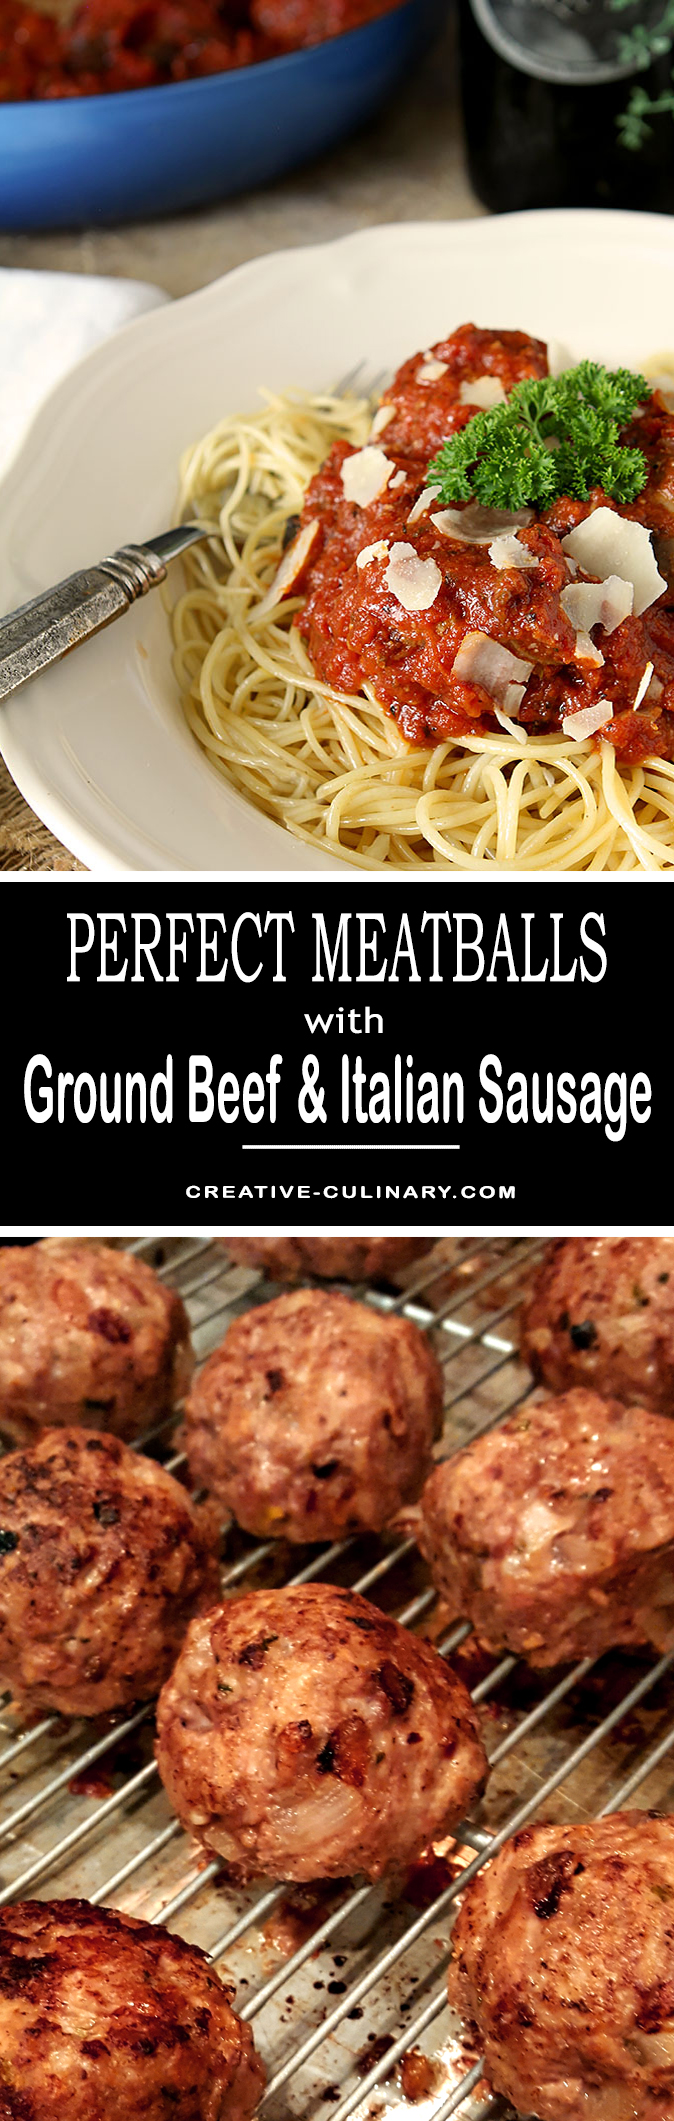 These really are Perfect Meatballs with Ground Beef and Italian Sausage giving them the BEST flavor!